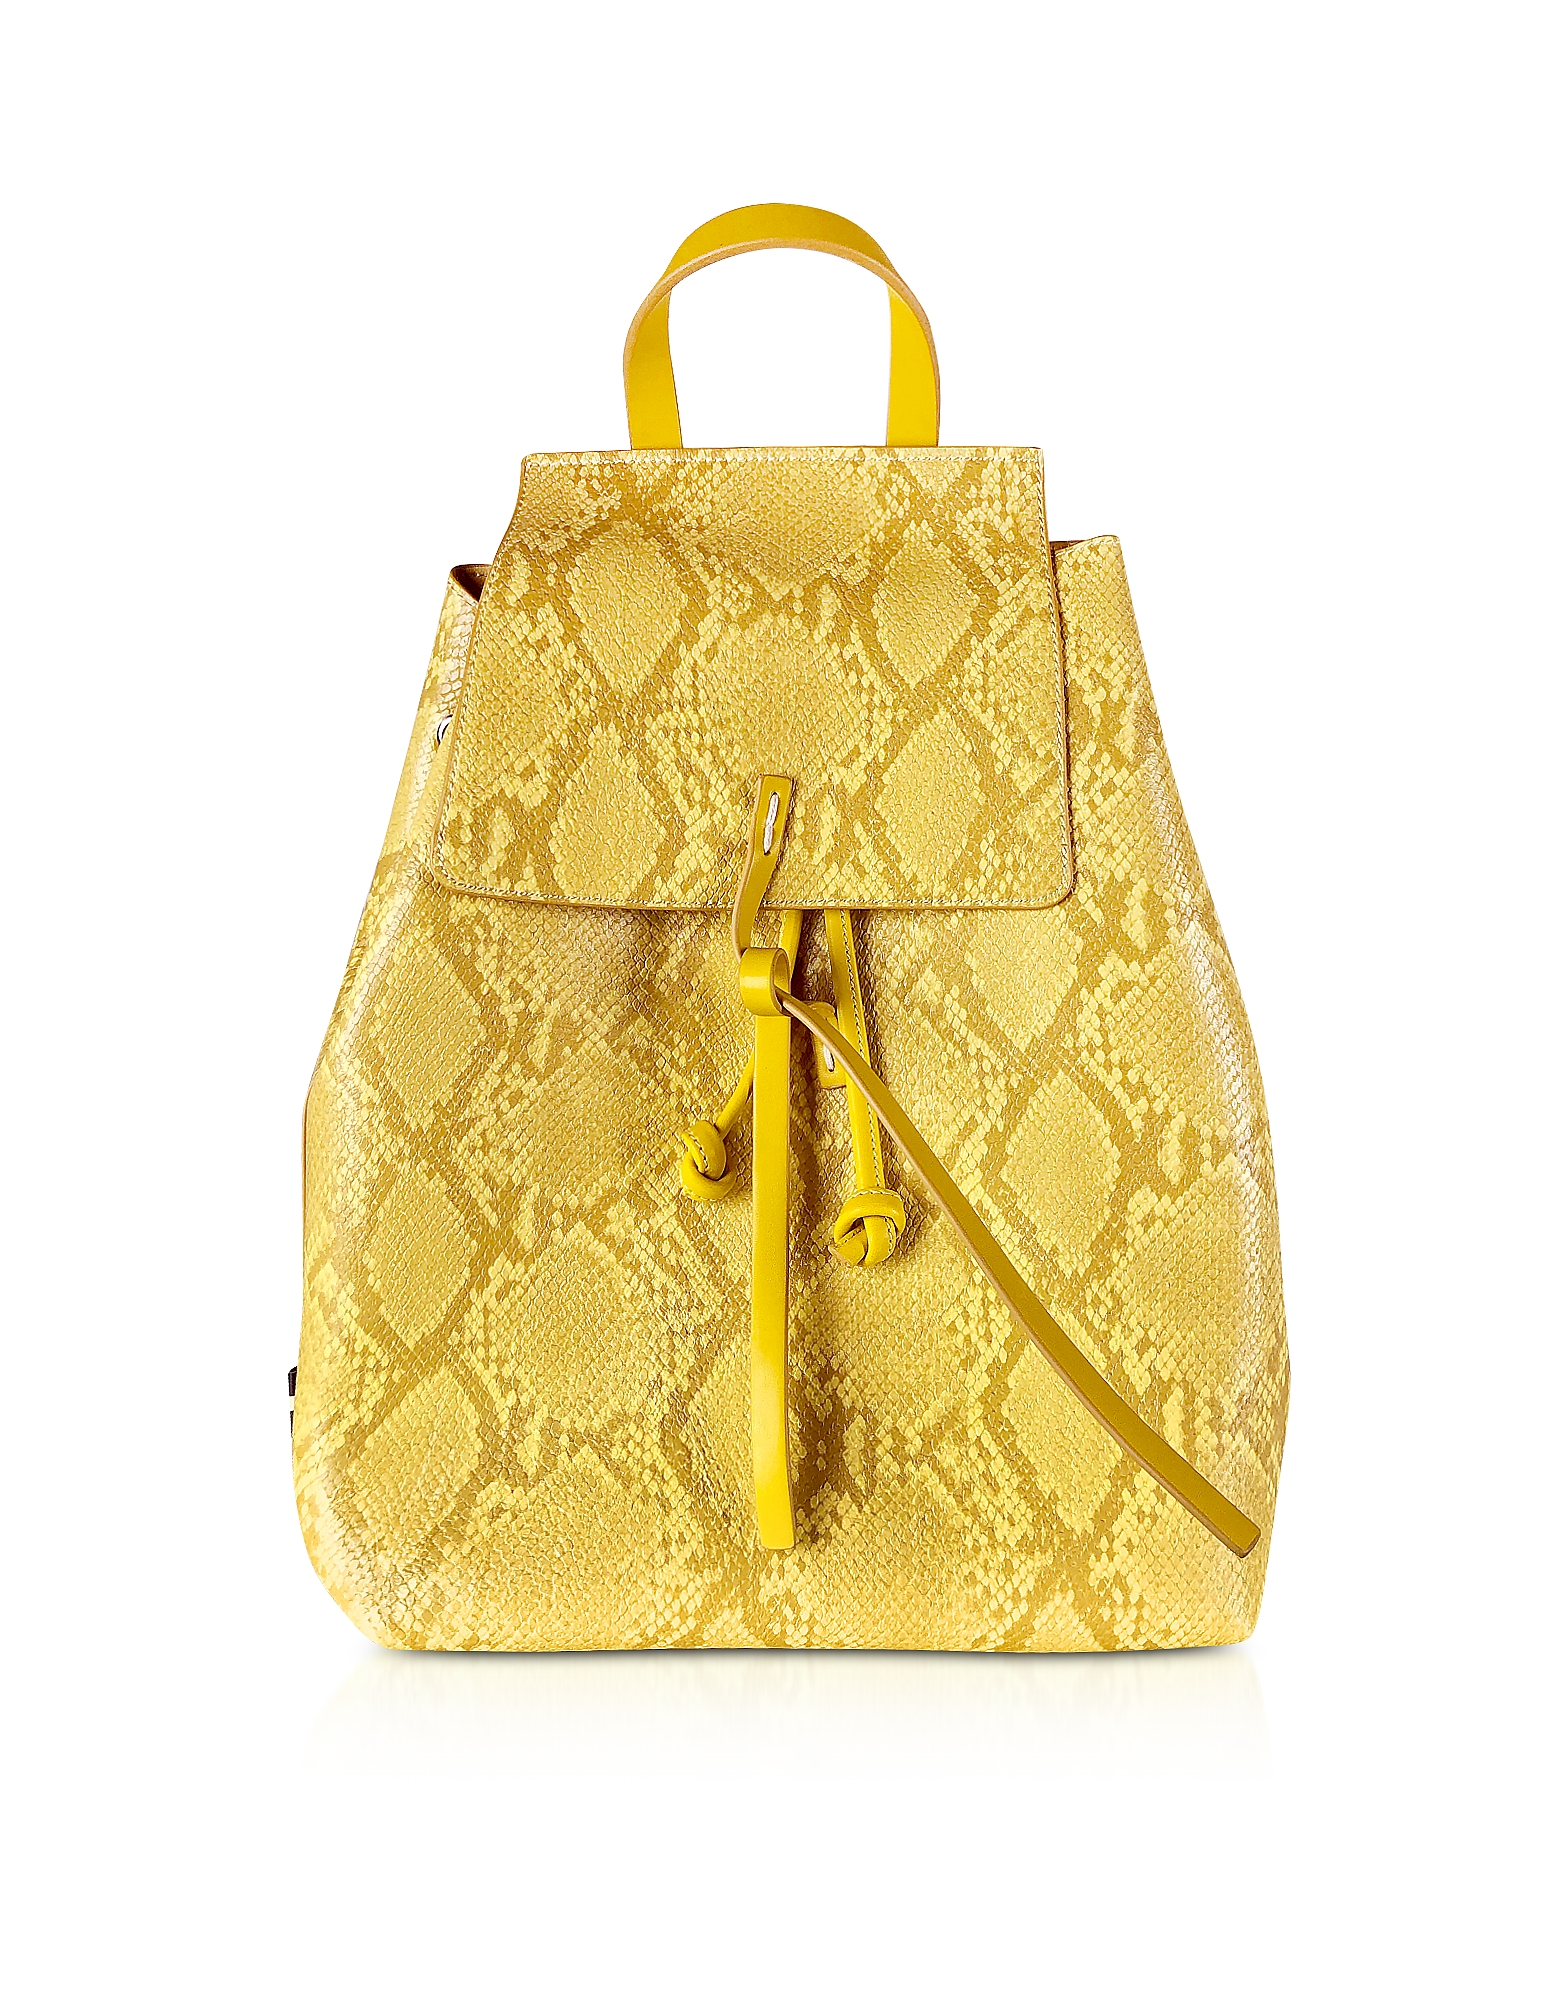 Manila Grace Designer Handbags, Sun Yellow Python Embossed Backpack